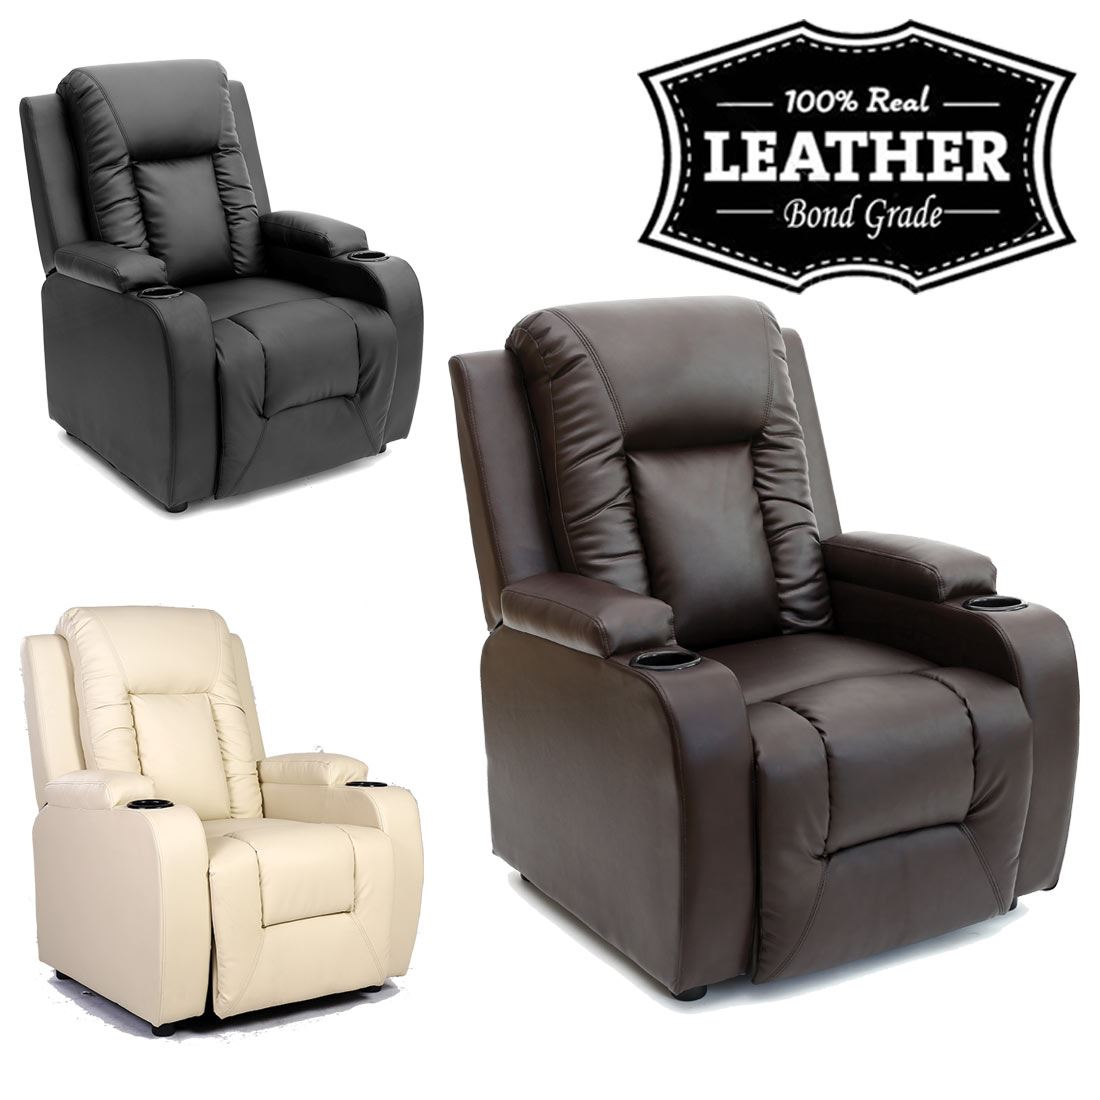 Details About Oscar Leather Recliner W Drink Holders Armchair Sofa Chair Reclining Cinema